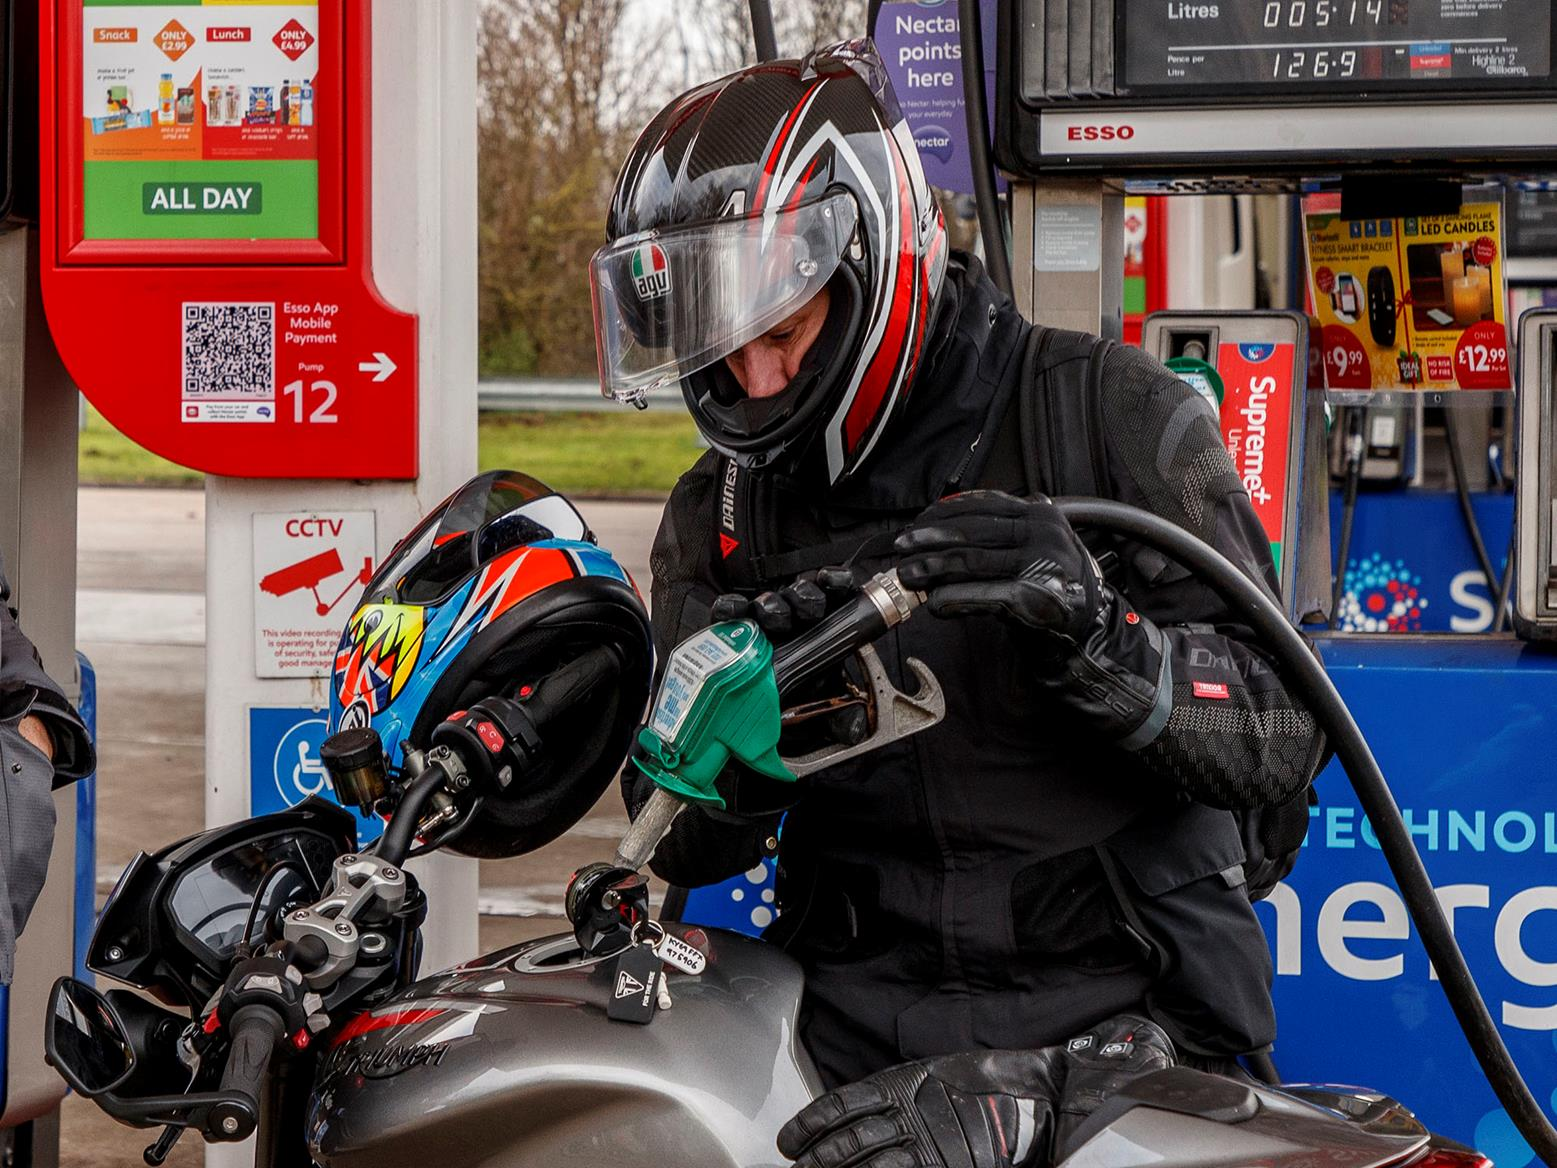 Image result for e 10 fuel motorcyle